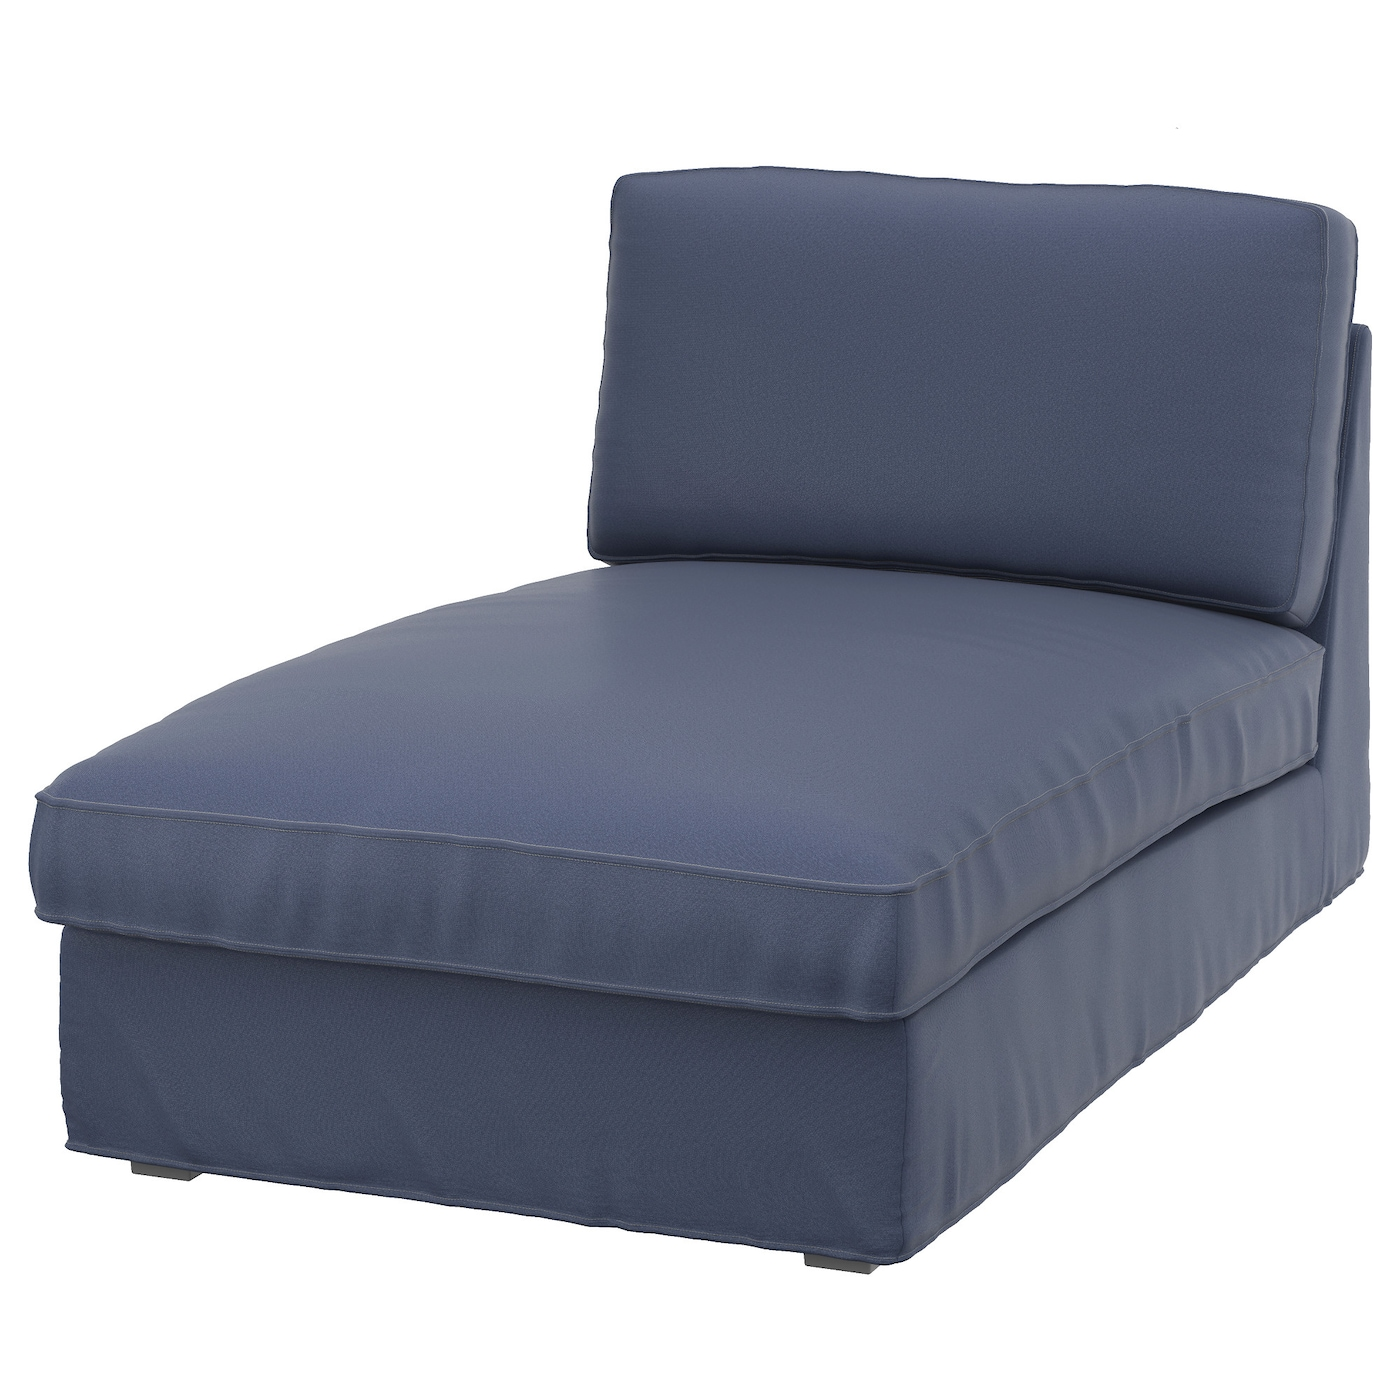 Kivik chaise longue ramna dark blue ikea for Chaise longue jardin ikea